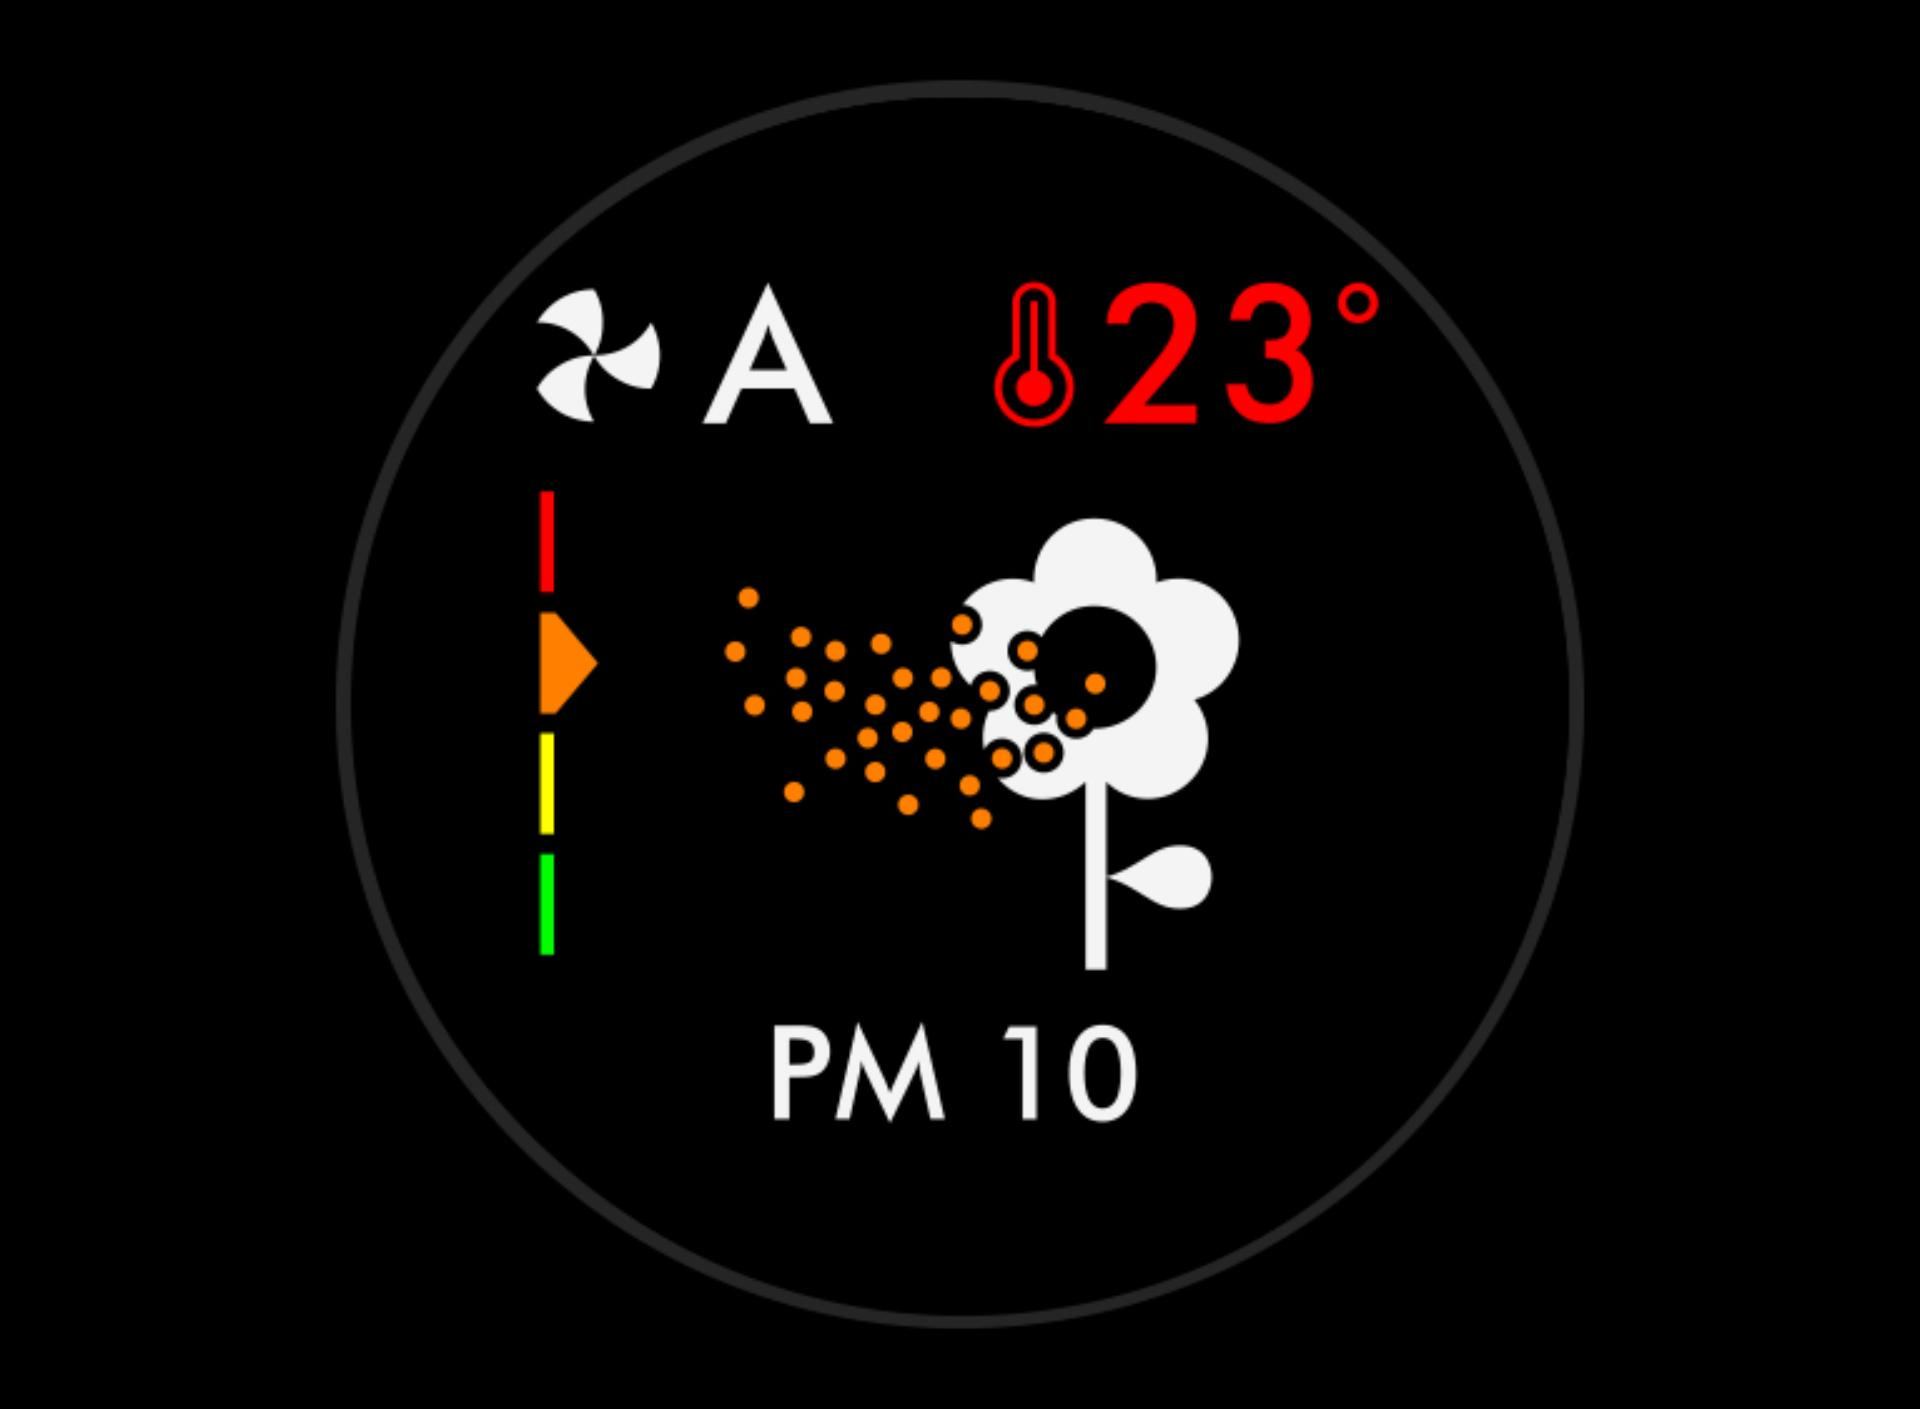 The LCD screen's icons showing different levels of pollutants